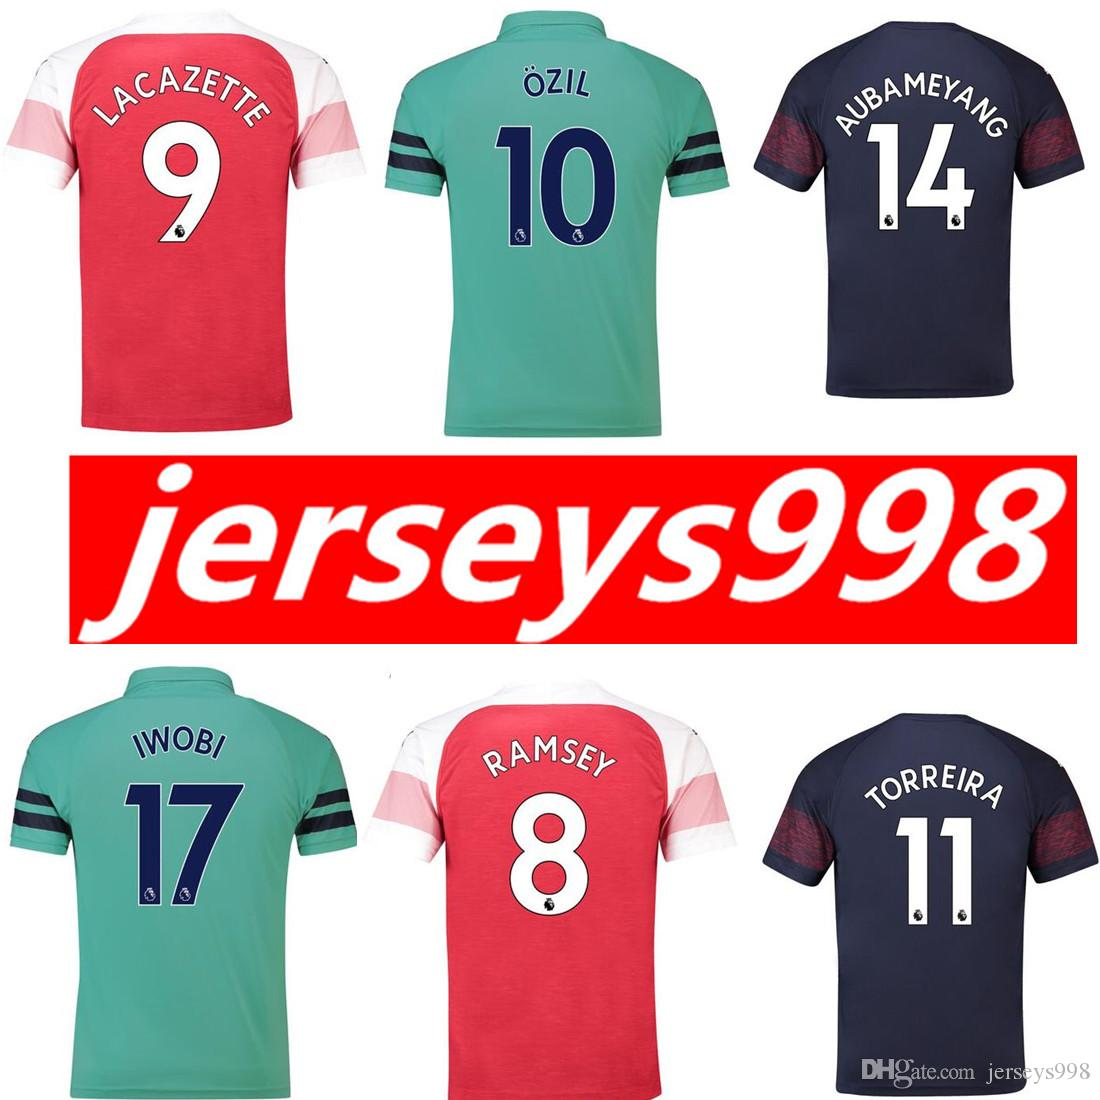 473b7192 ... ebay 2018 18 19 arsenal soccer jersey men home away 3rd 14 aubameyang  10 ozil 9